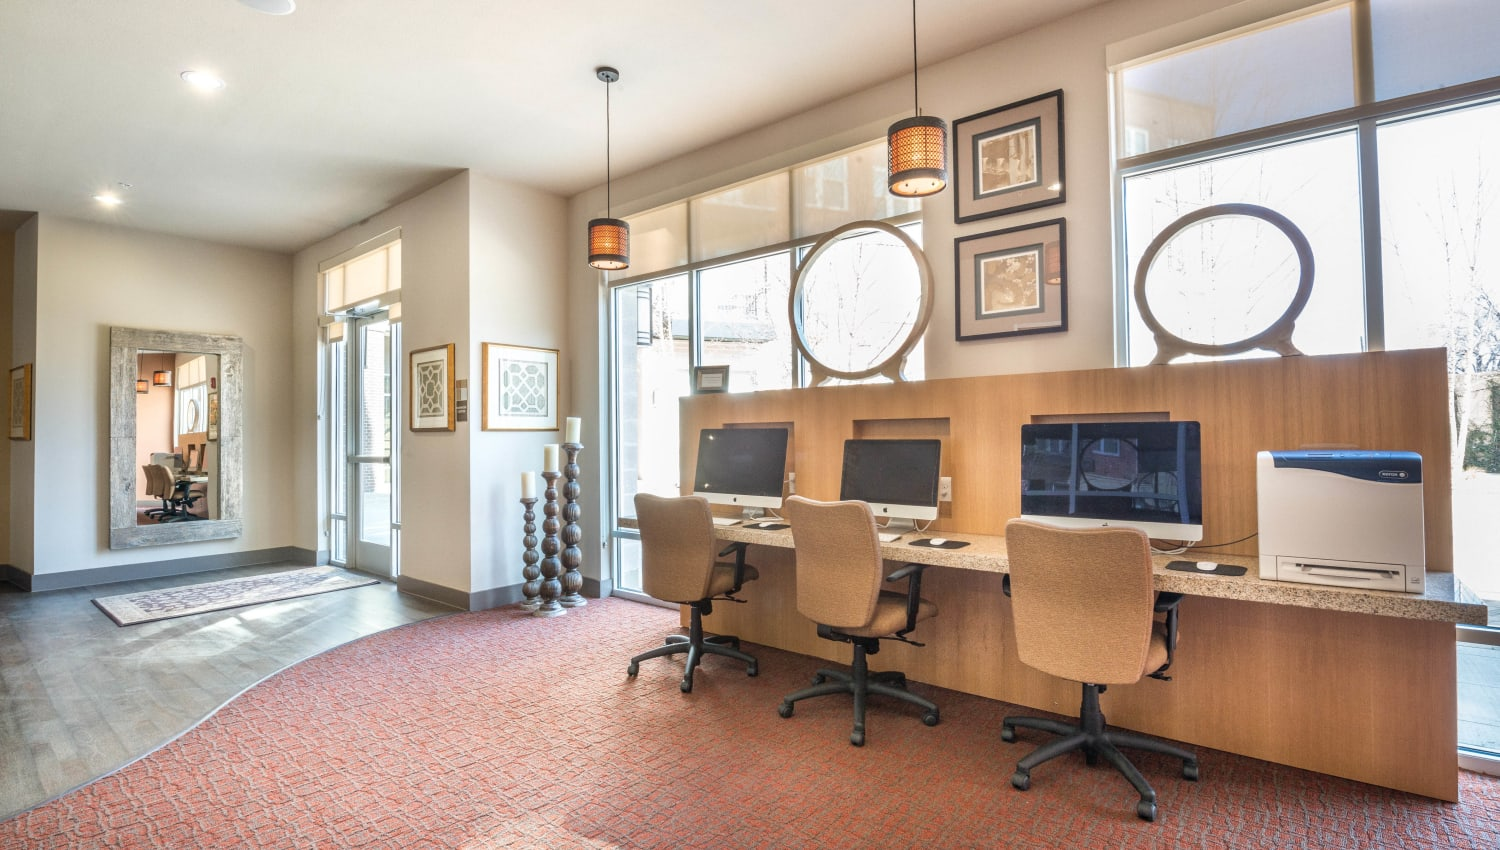 Plenty of room and equipment to get work done in the business center at Union At Carrollton Square in Carrollton, Texas